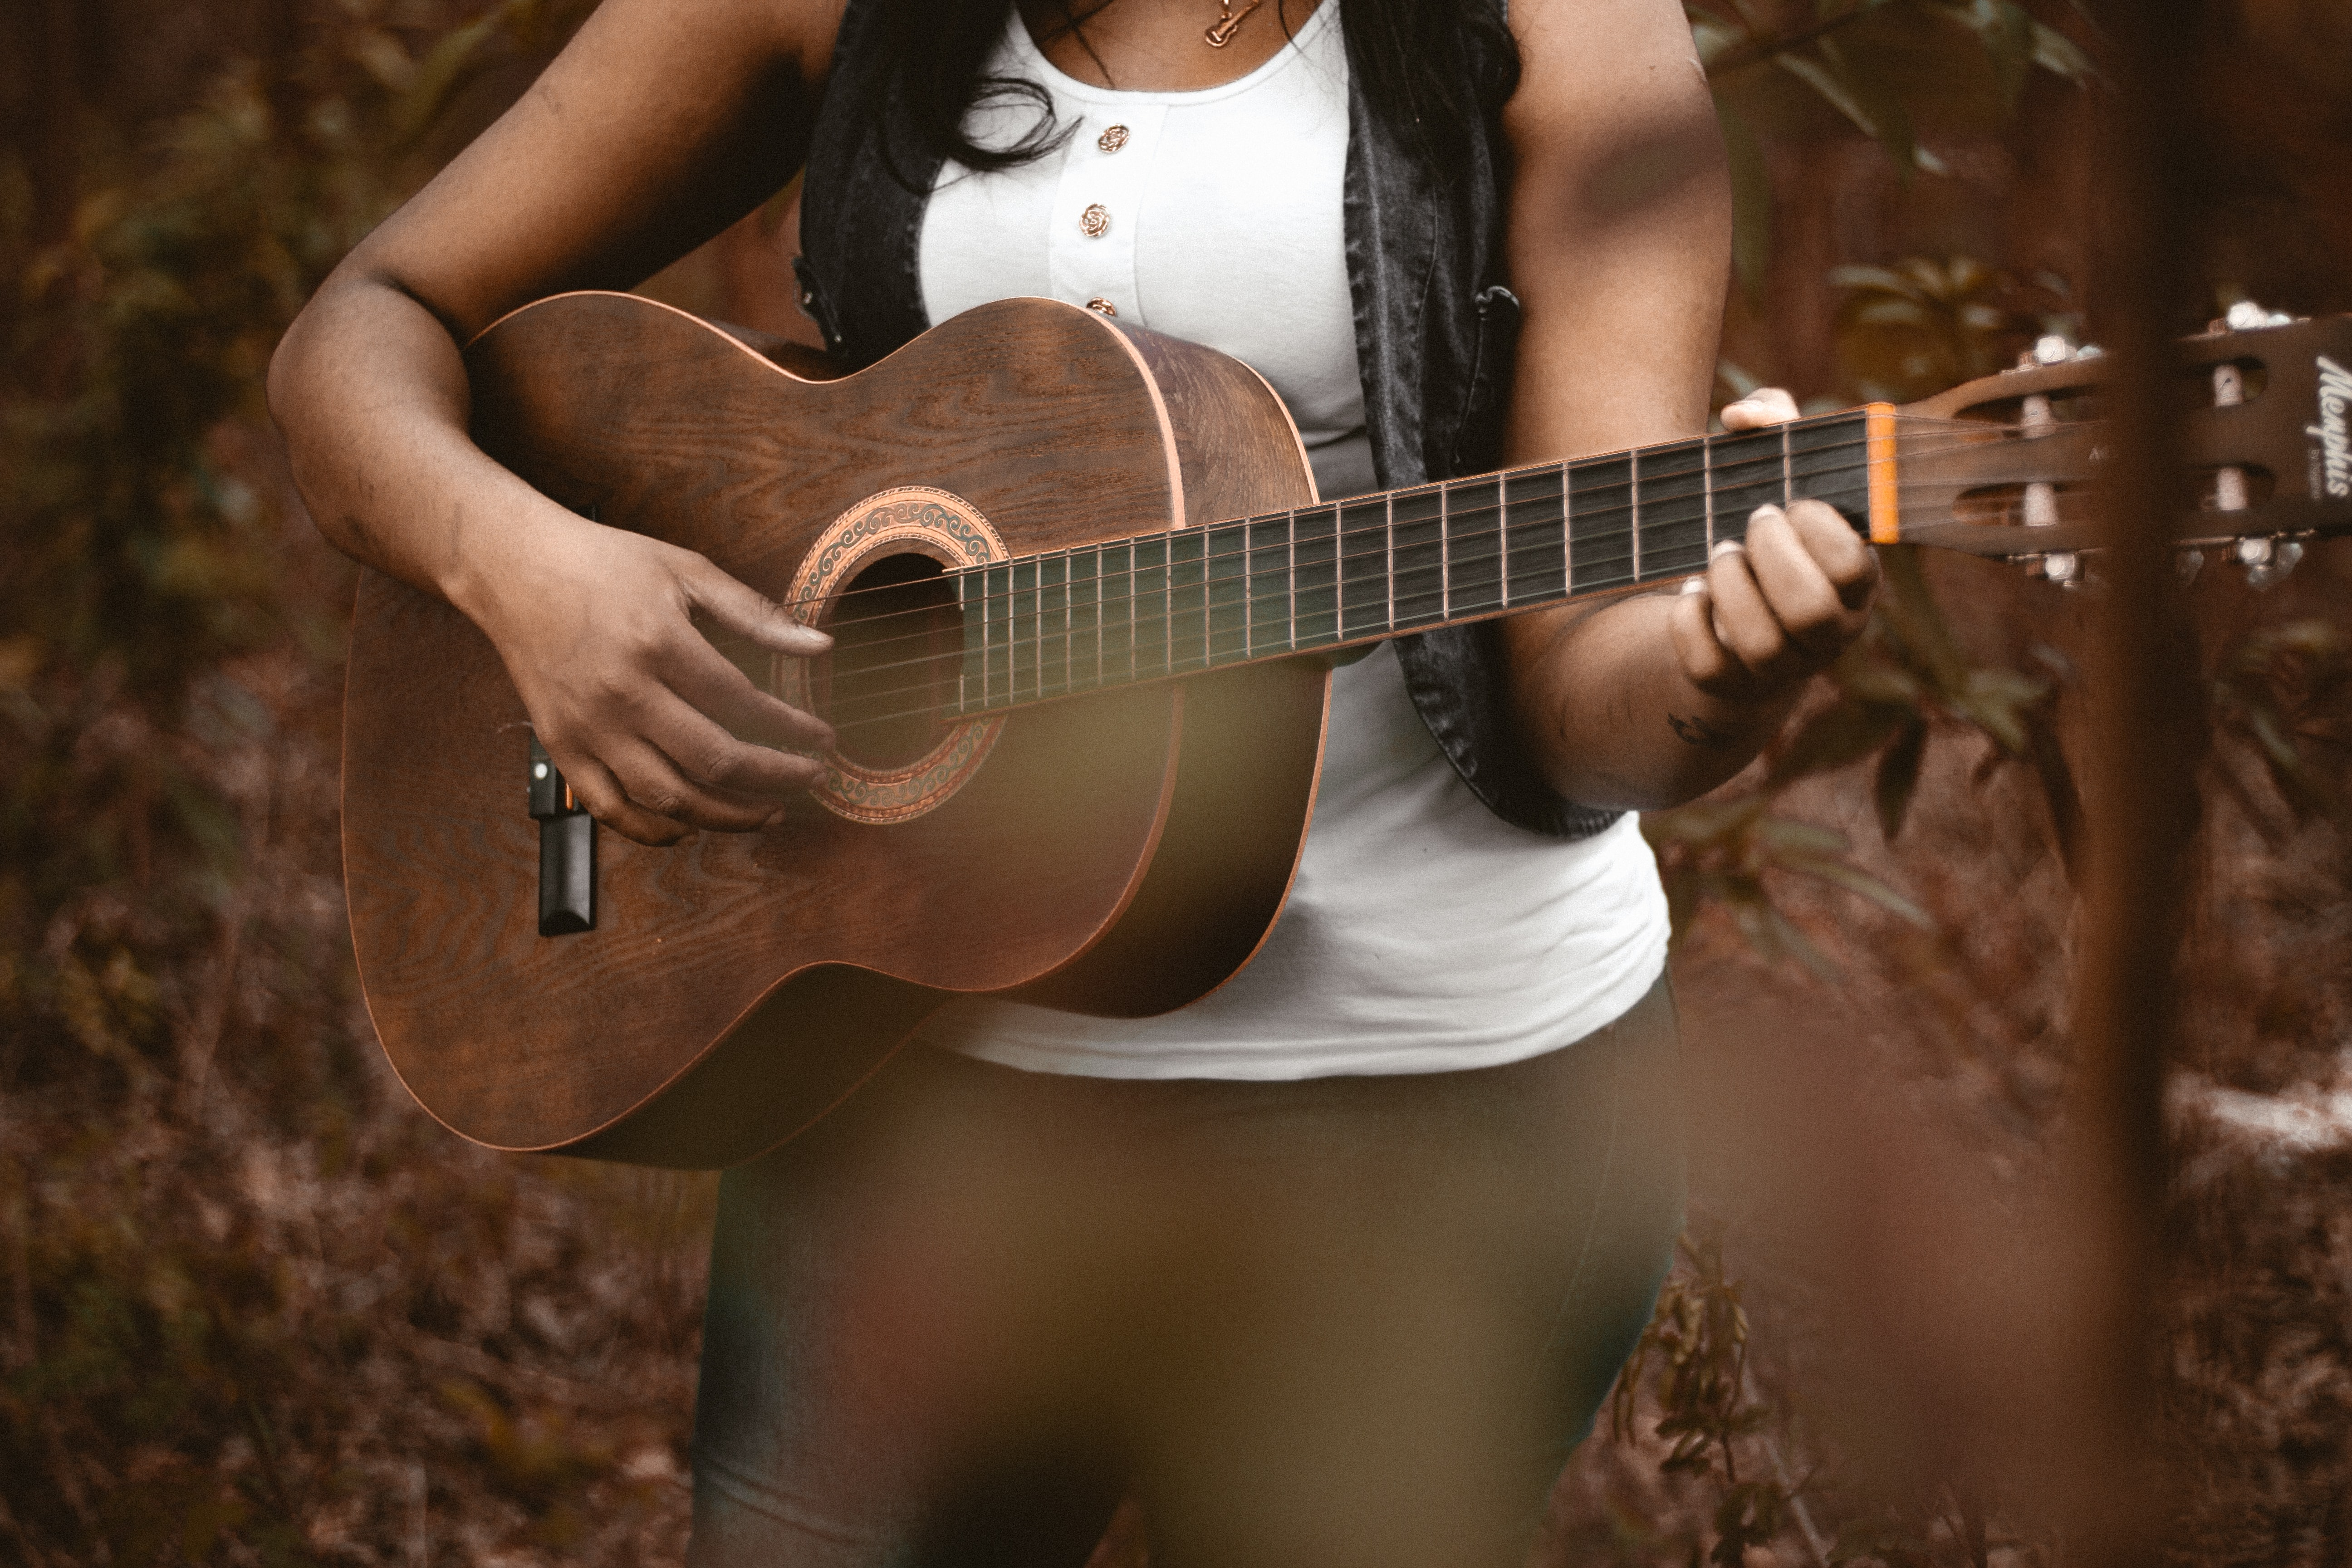 A woman playing acoustic guitar with leaf-covered ground in the background